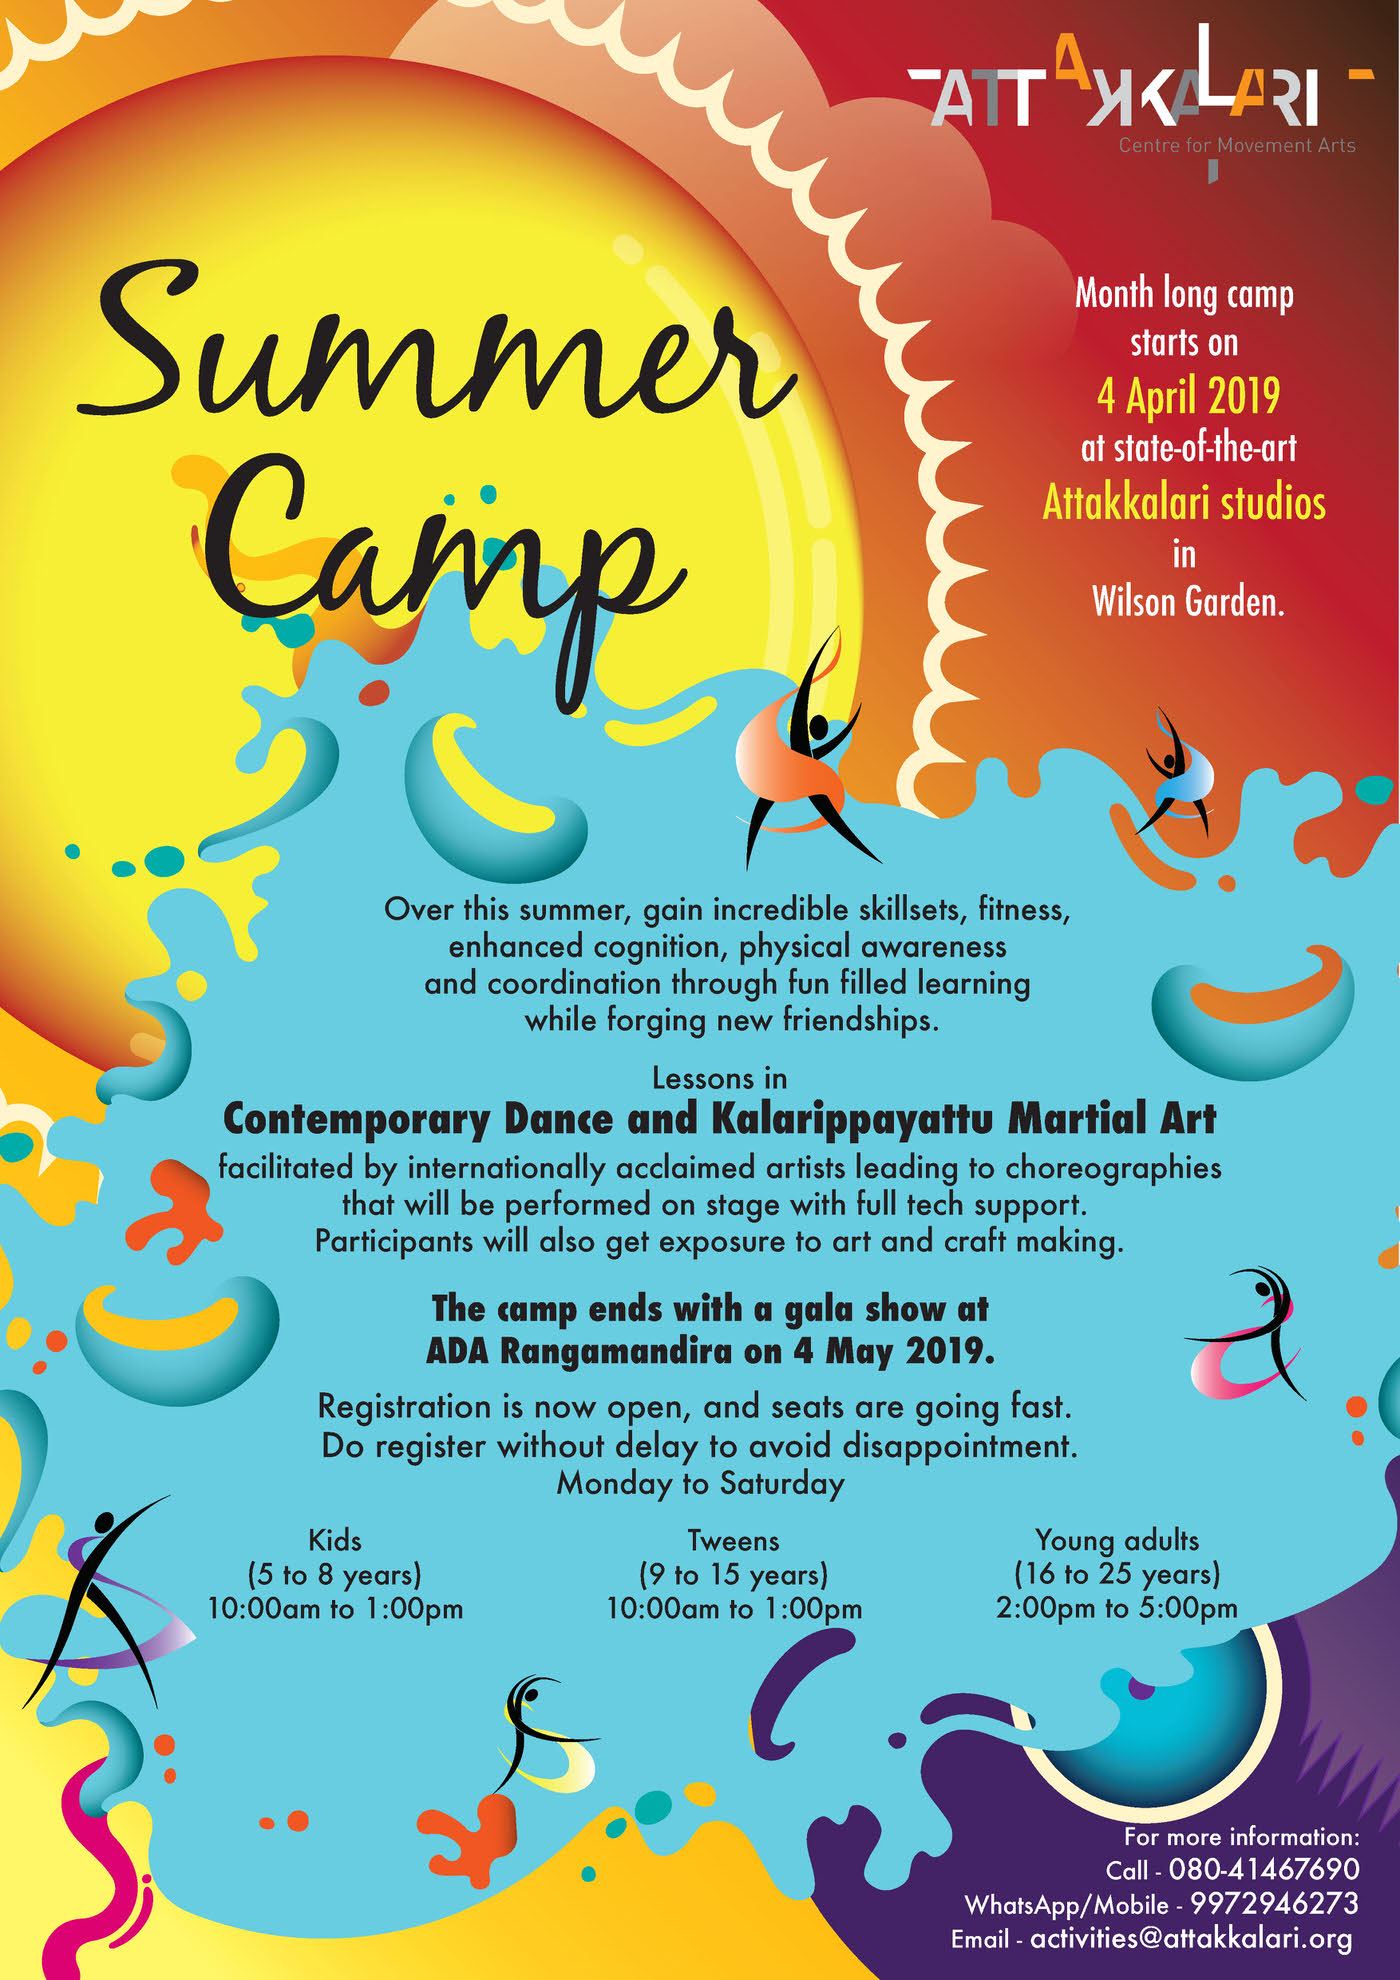 Attakkalari Summer Camp 2019 Cover Image